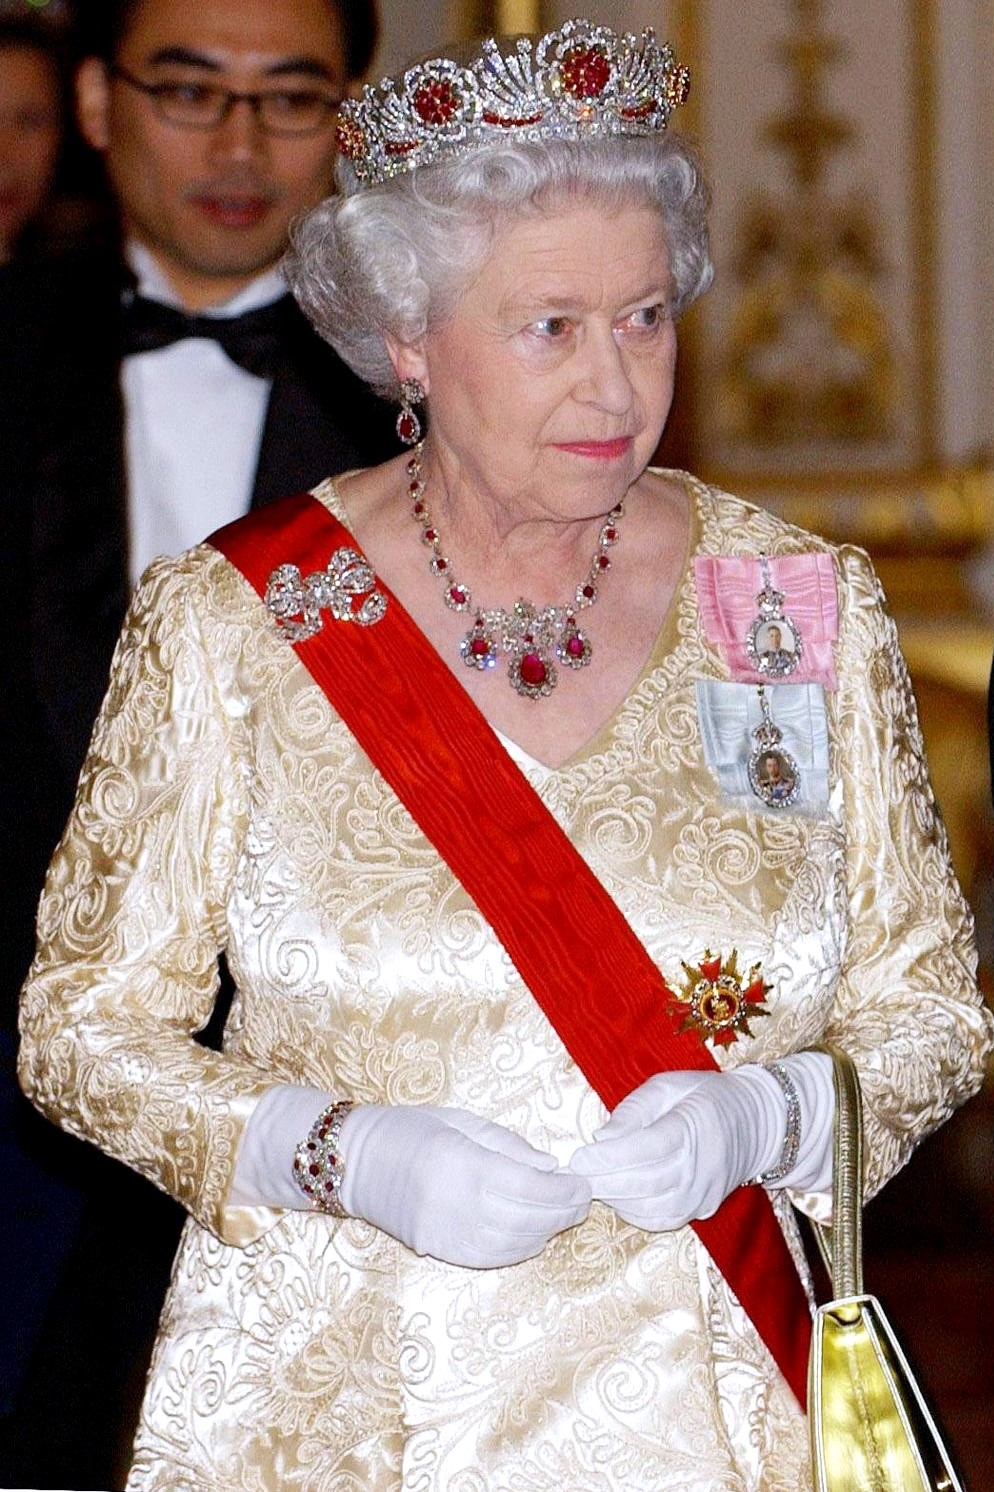 The Queen's Baring Necklace